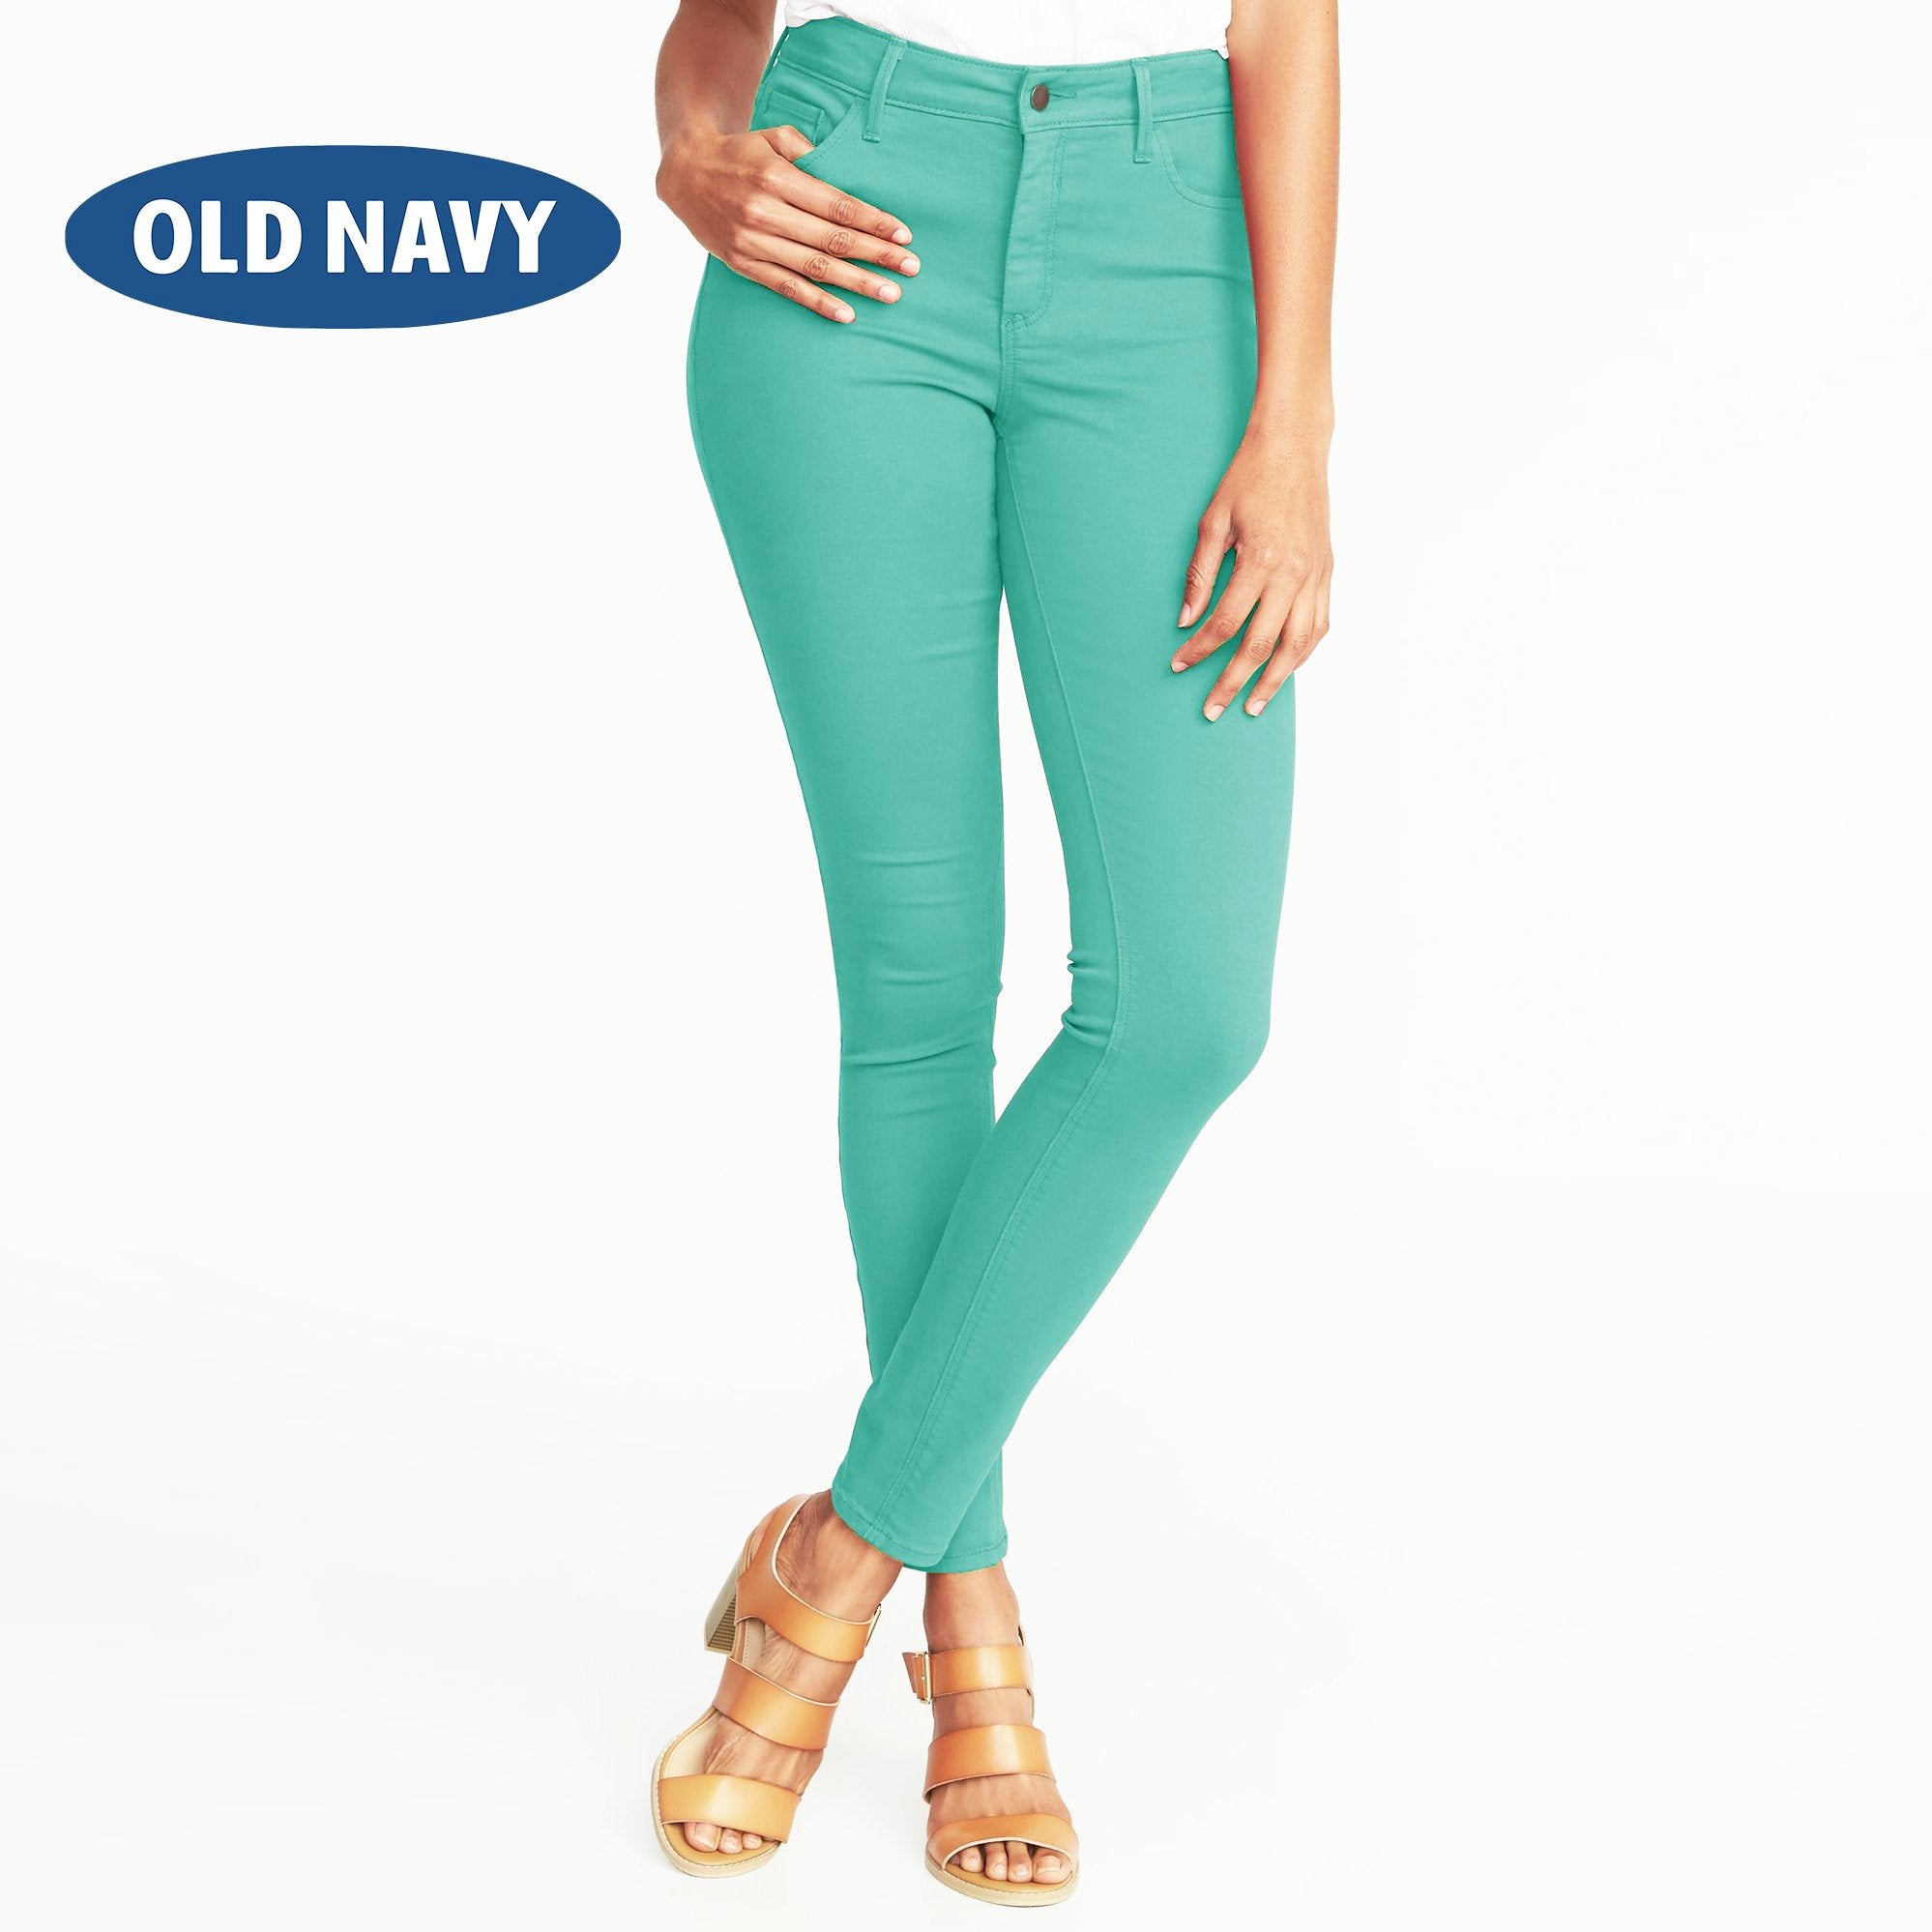 Old Navy Stylish Slim Fit Denim For Ladies-Light Turquoise-NA7998